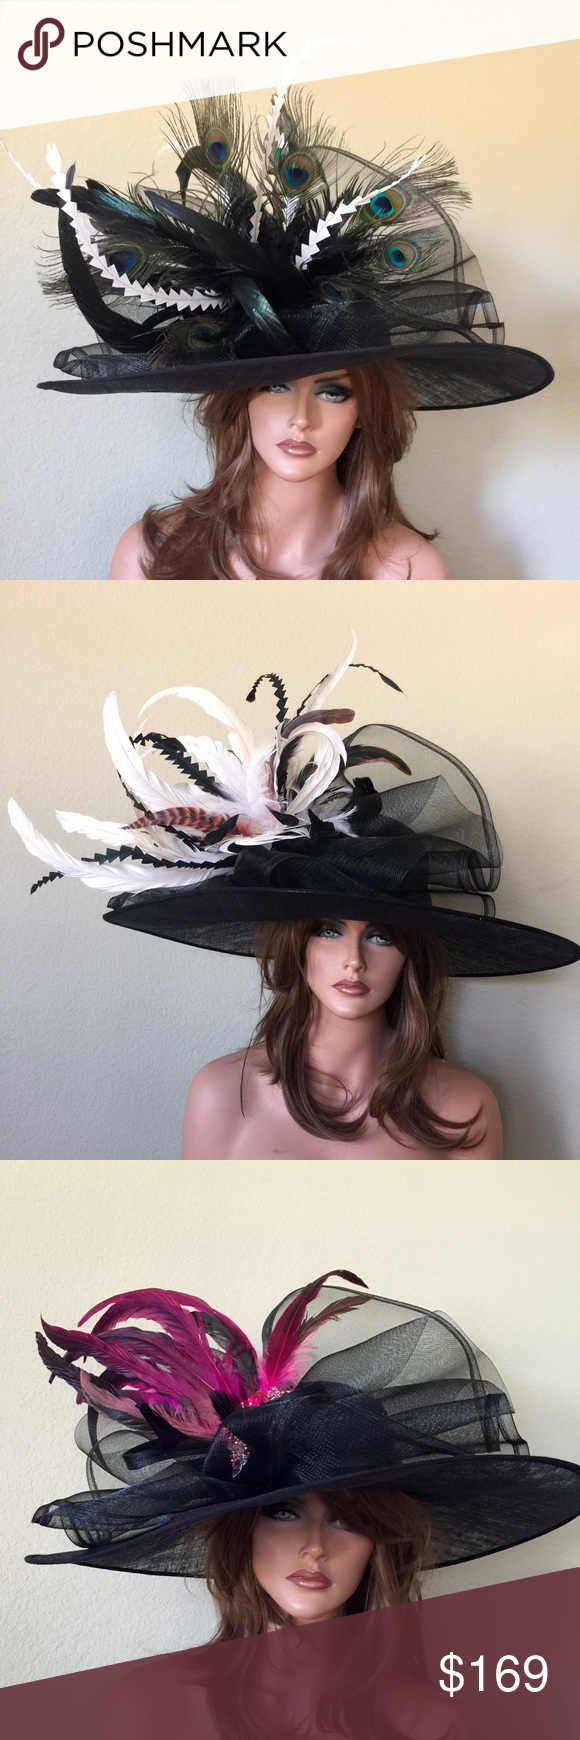 Black Wide Brim Peacock Kentucky Derby Hat This is a black base hat with feathers of your choice. Can custom match any outfit. Jenifer Buckley Hats Accessories Hats